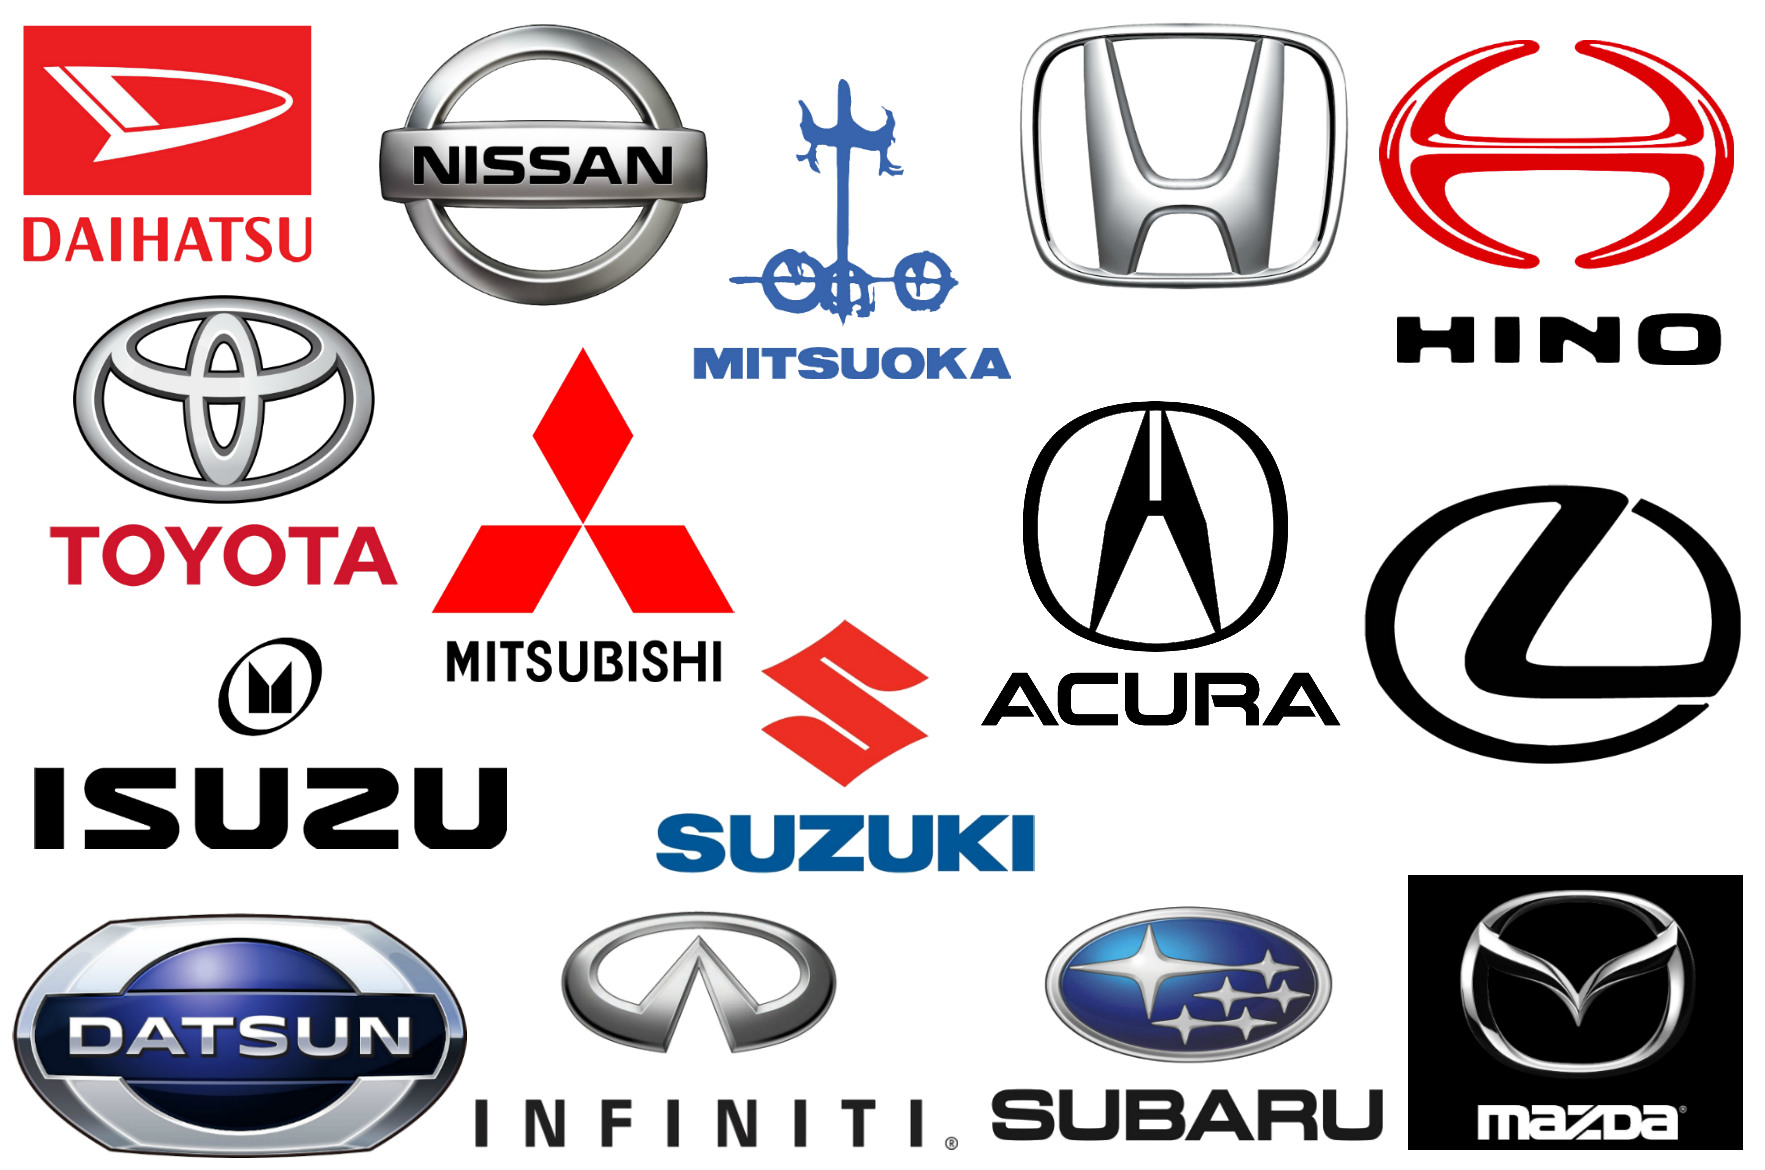 Car Brands In Japan >> Japanese Car Brands Companies And Manufacturers Car Brand Names Com